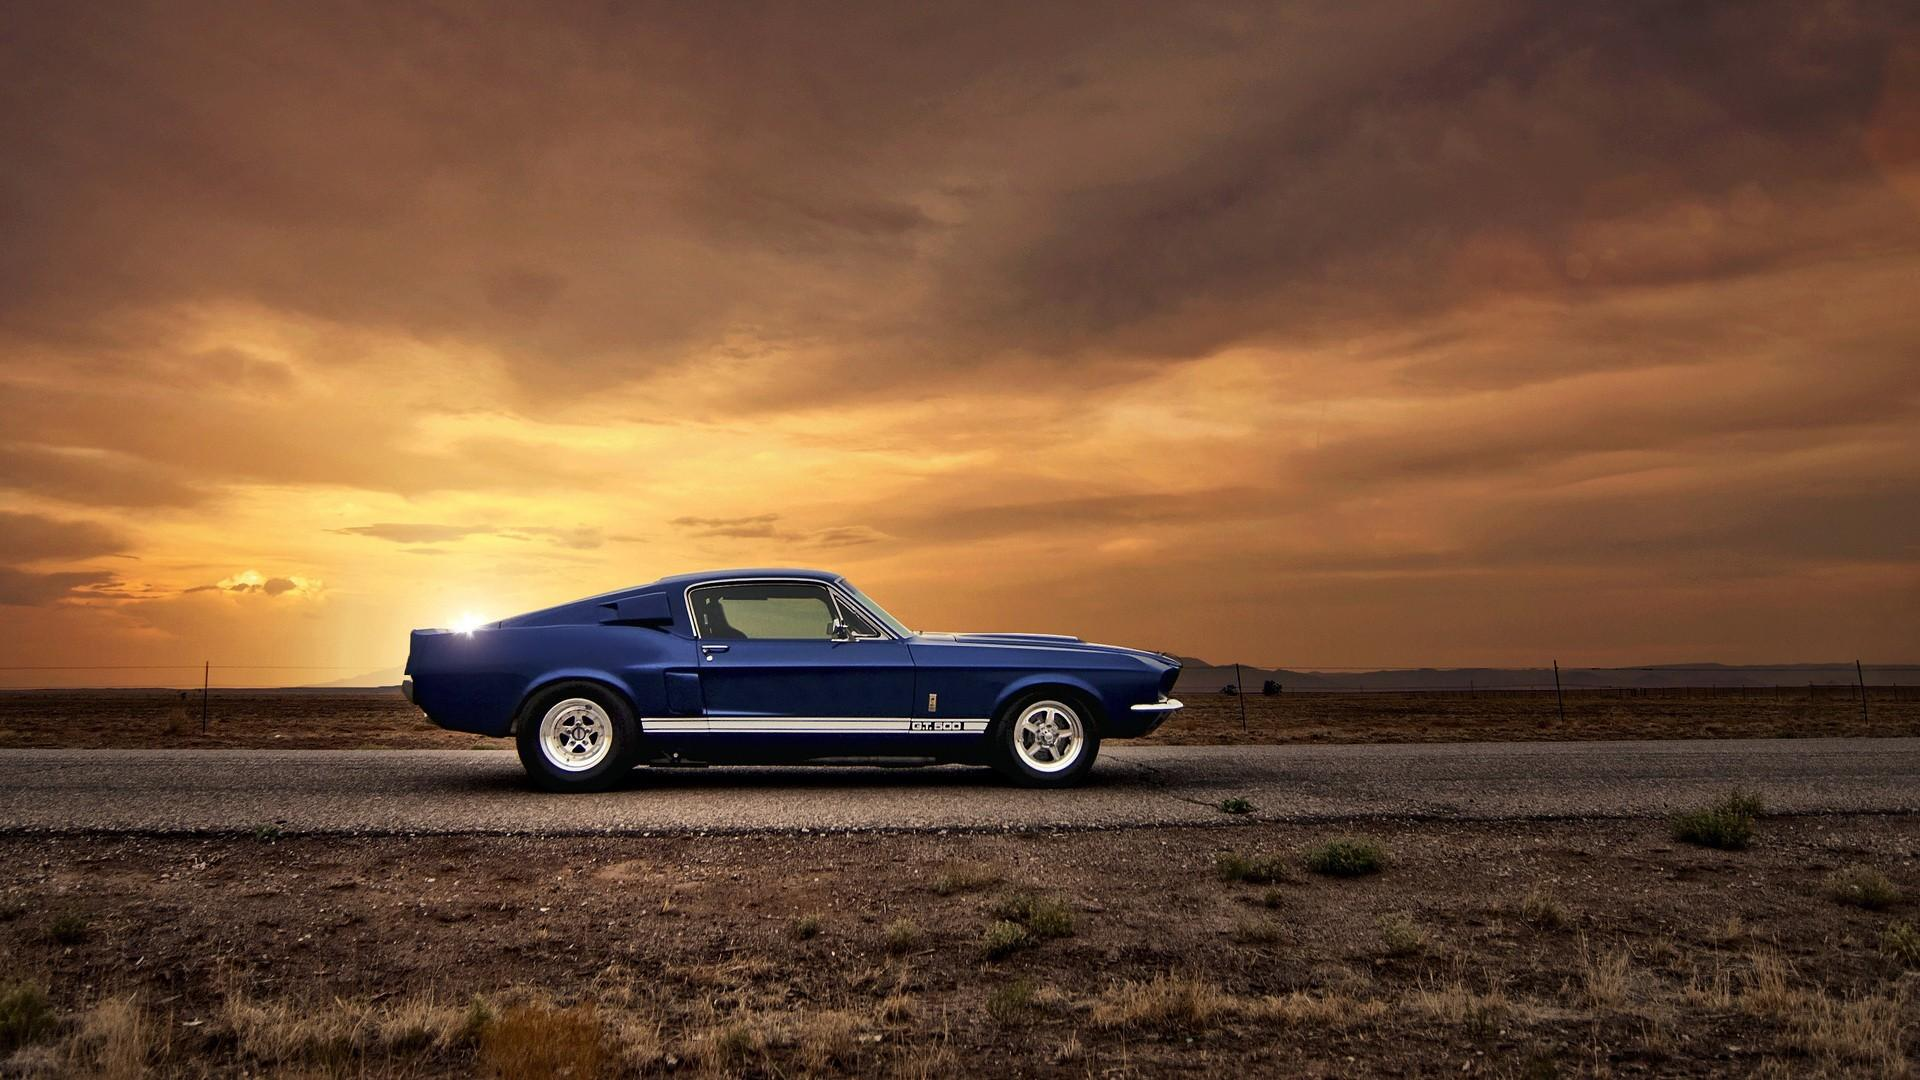 American muscle car ford mustang gt500 shelby cars wallpaper 74487 1920x1080